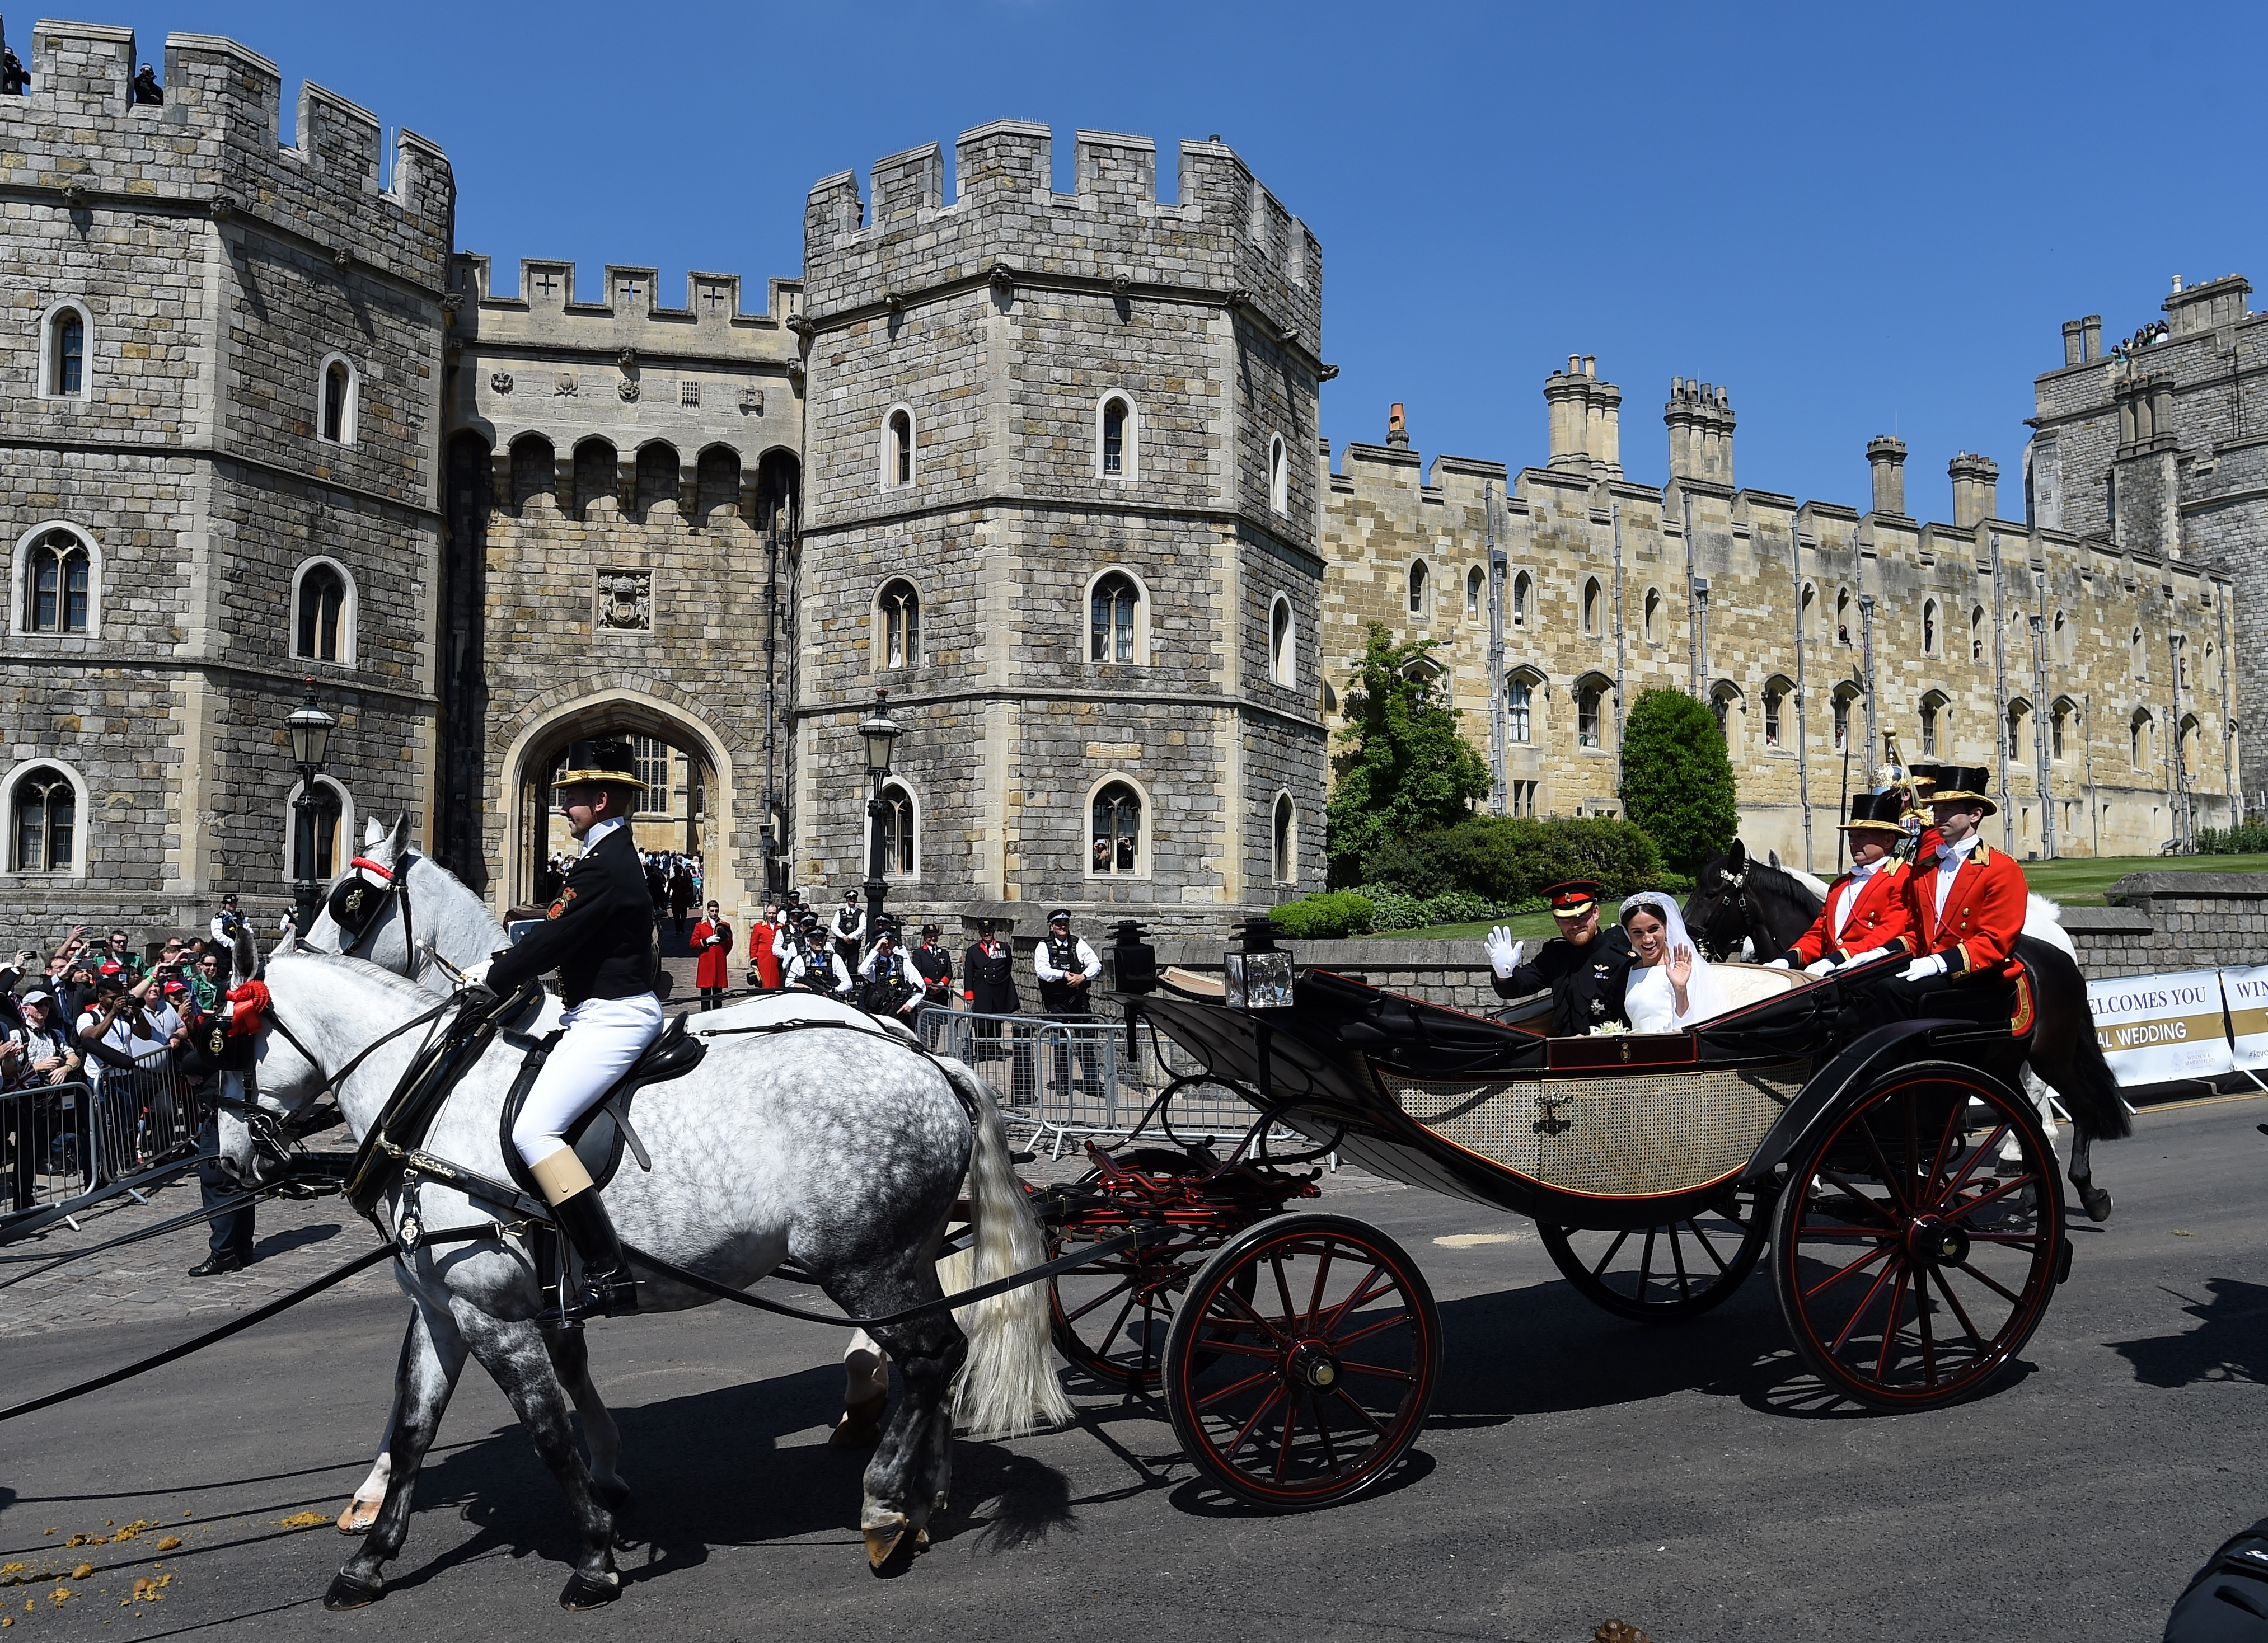 royal wedding cars see the regal rides vintage to electric fortune https fortune com 2018 05 19 cars at royal wedding